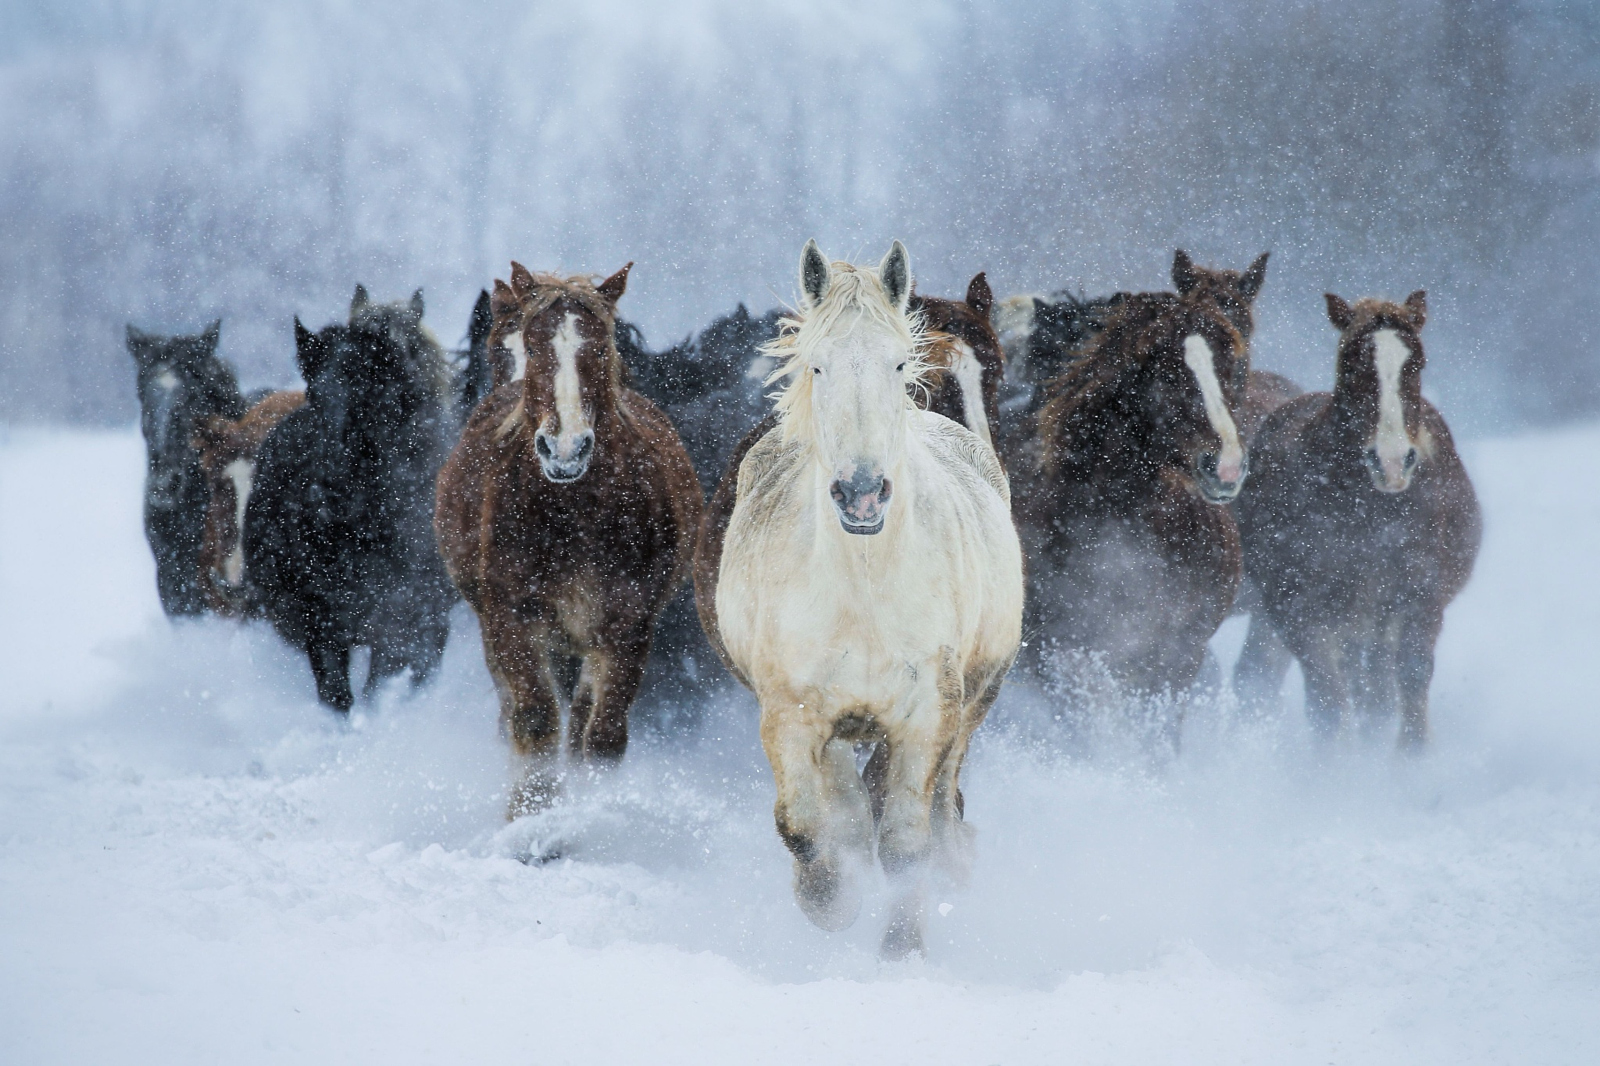 Equine Ecstasy 30 Most Popular Horse Photos On 500px 500px